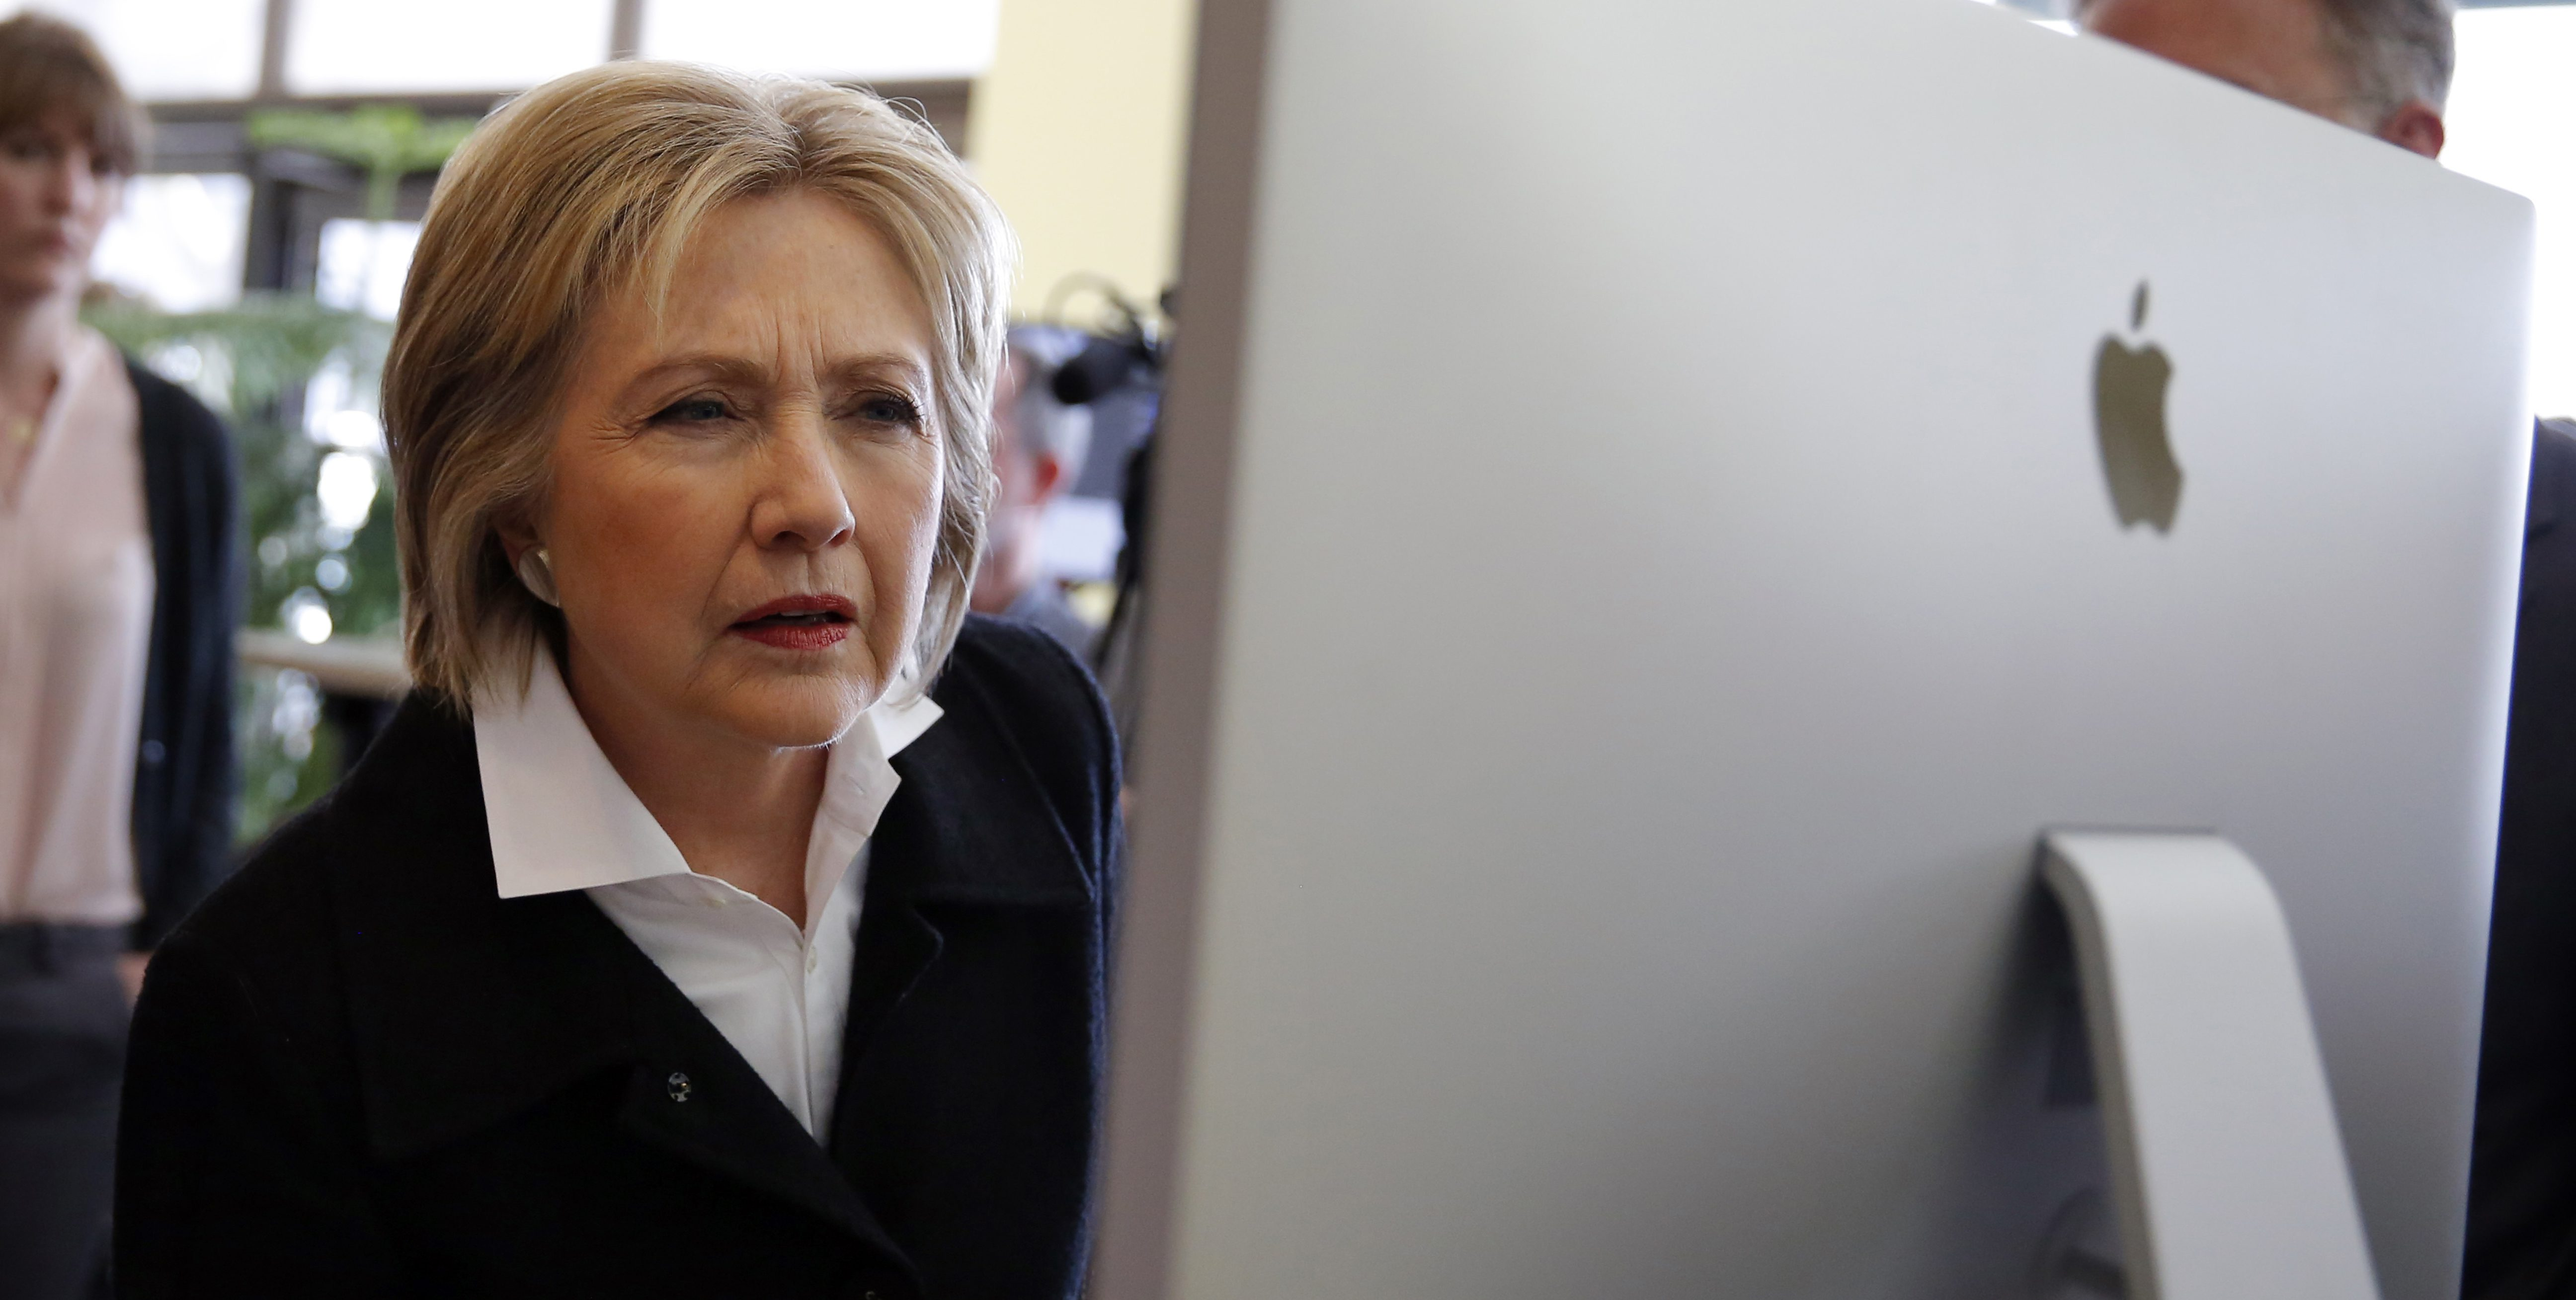 U.S. Democratic presidential candidate Hillary Clinton looks at a computer screen during a campaign stop at Atomic Object company in Grand Rapids, Michigan, U.S. March 7, 2016. REUTERS/Carlos Barria/File Photo - RTSKBLY